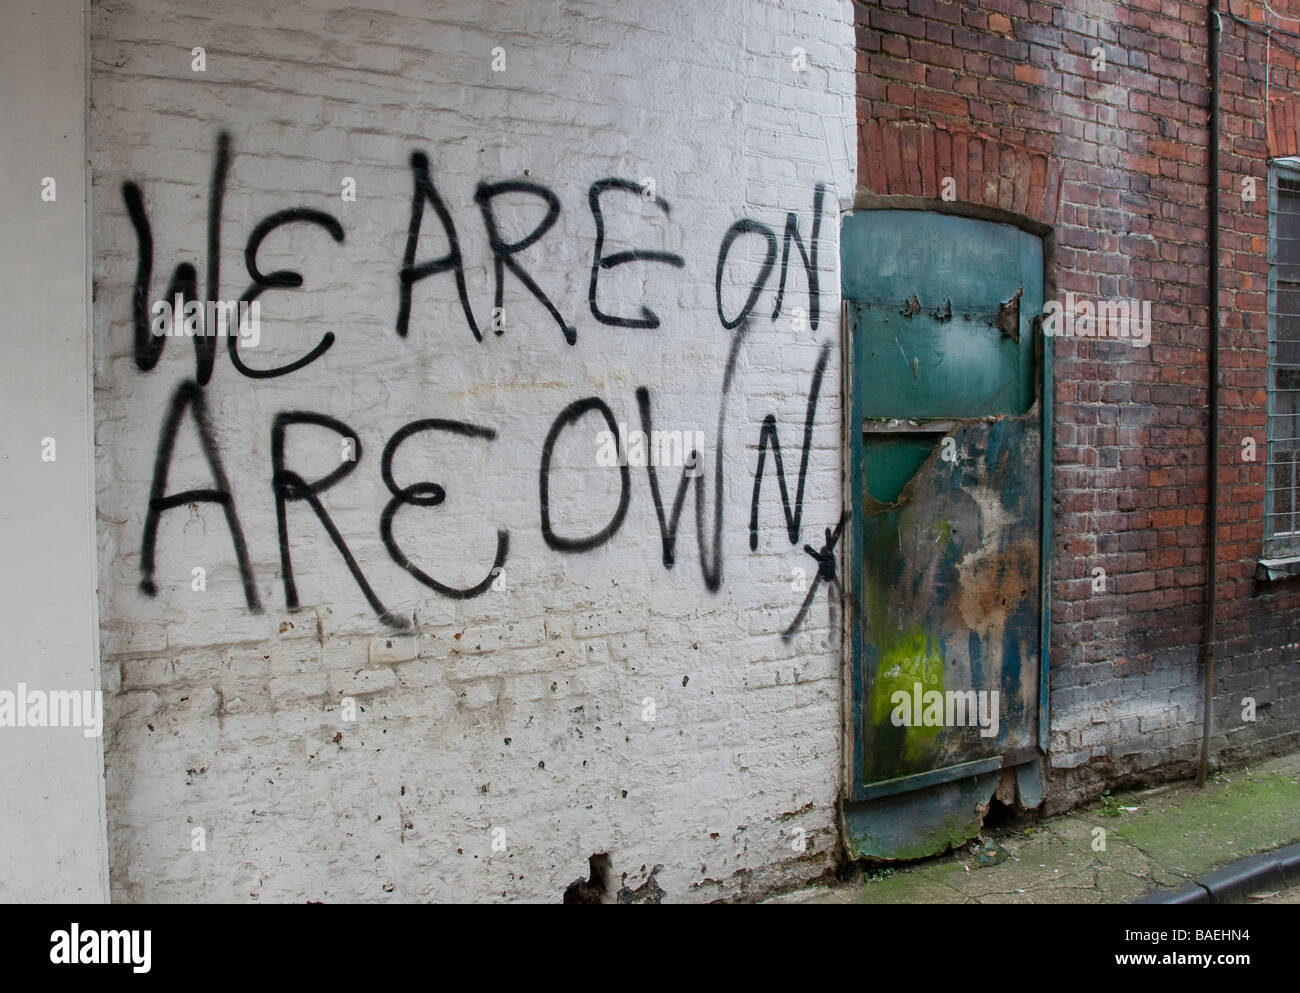 Graffiti on white brick wall in a run down area, stating 'we are on Stock  Photo - Alamy